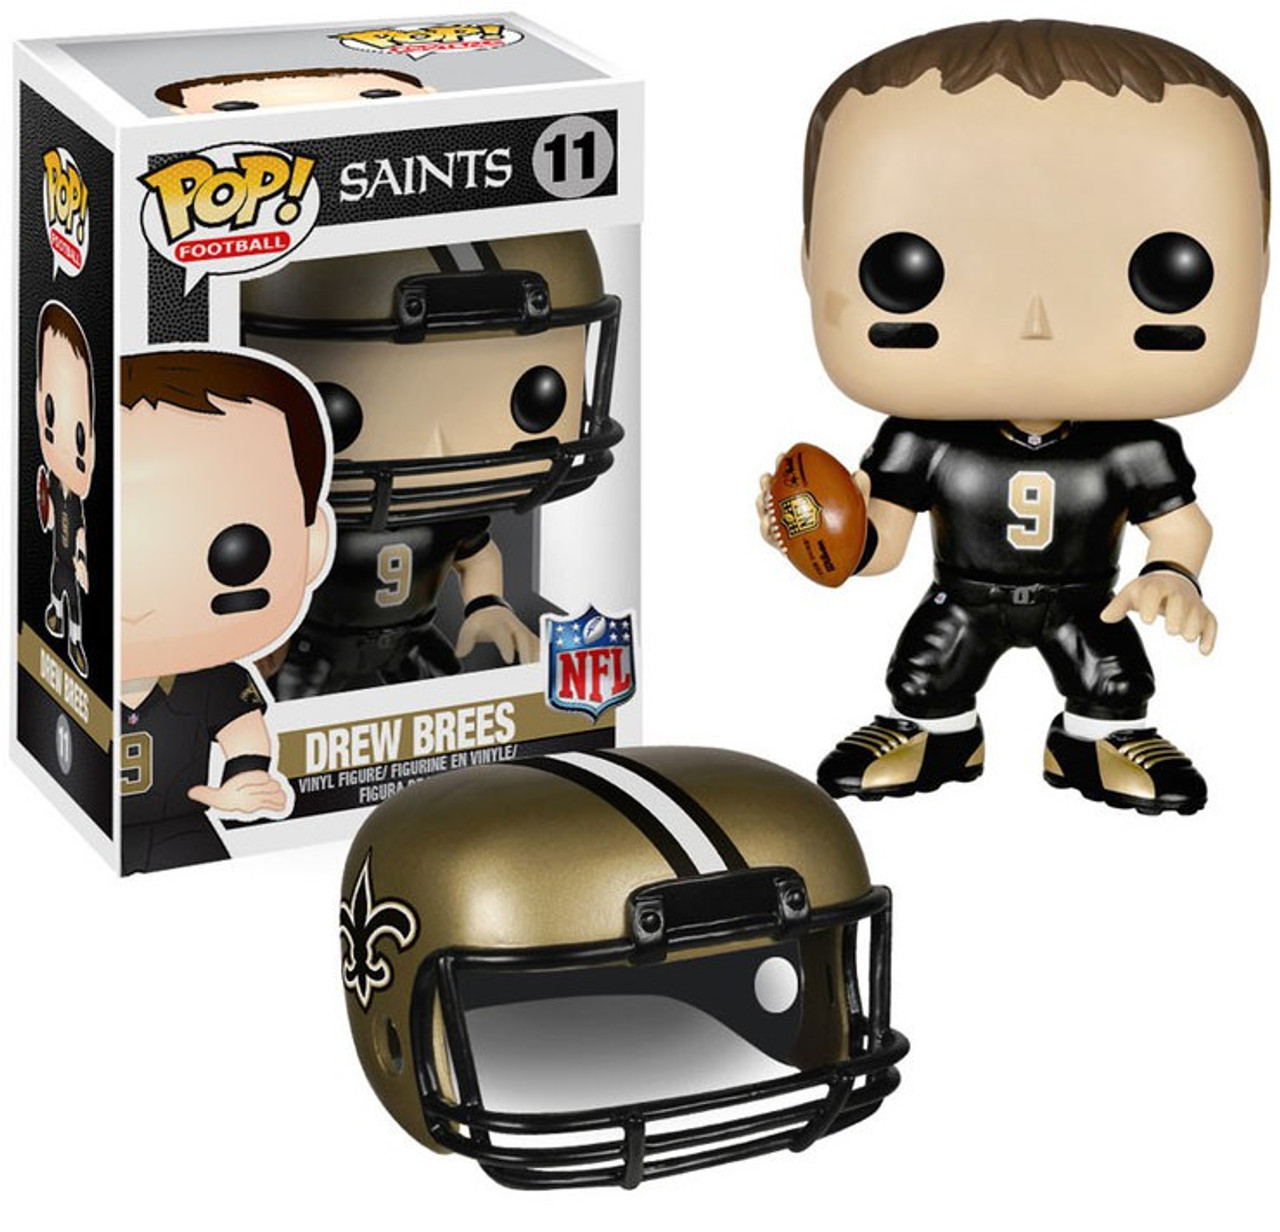 709845a9b61 Funko NFL New Orleans Saints Funko POP Sports Drew Brees Vinyl Figure 11  Black Jersey - ToyWiz